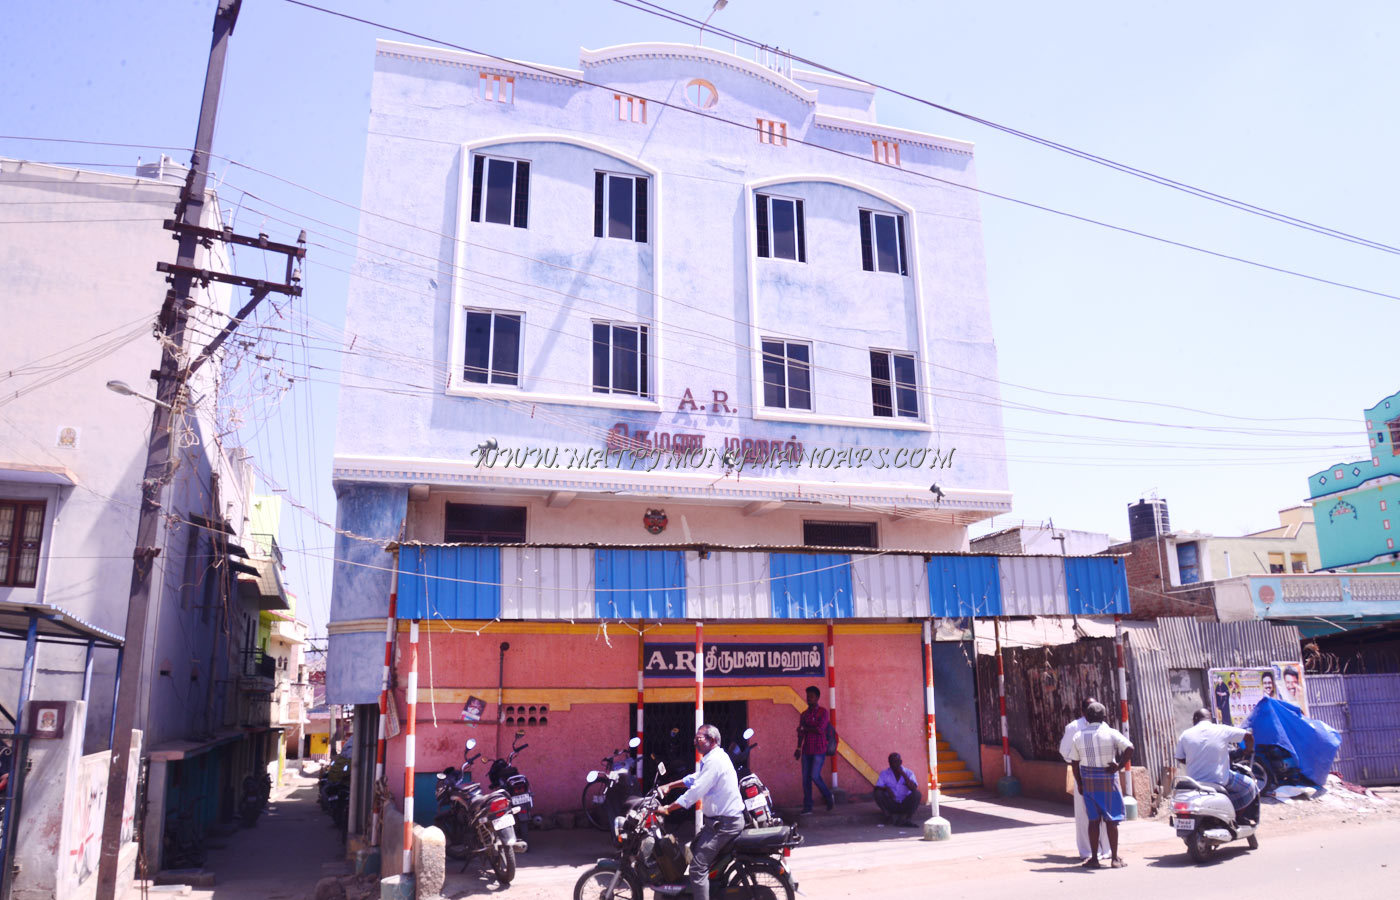 Find More Kalyana Mandapams in Kamarajar Salai